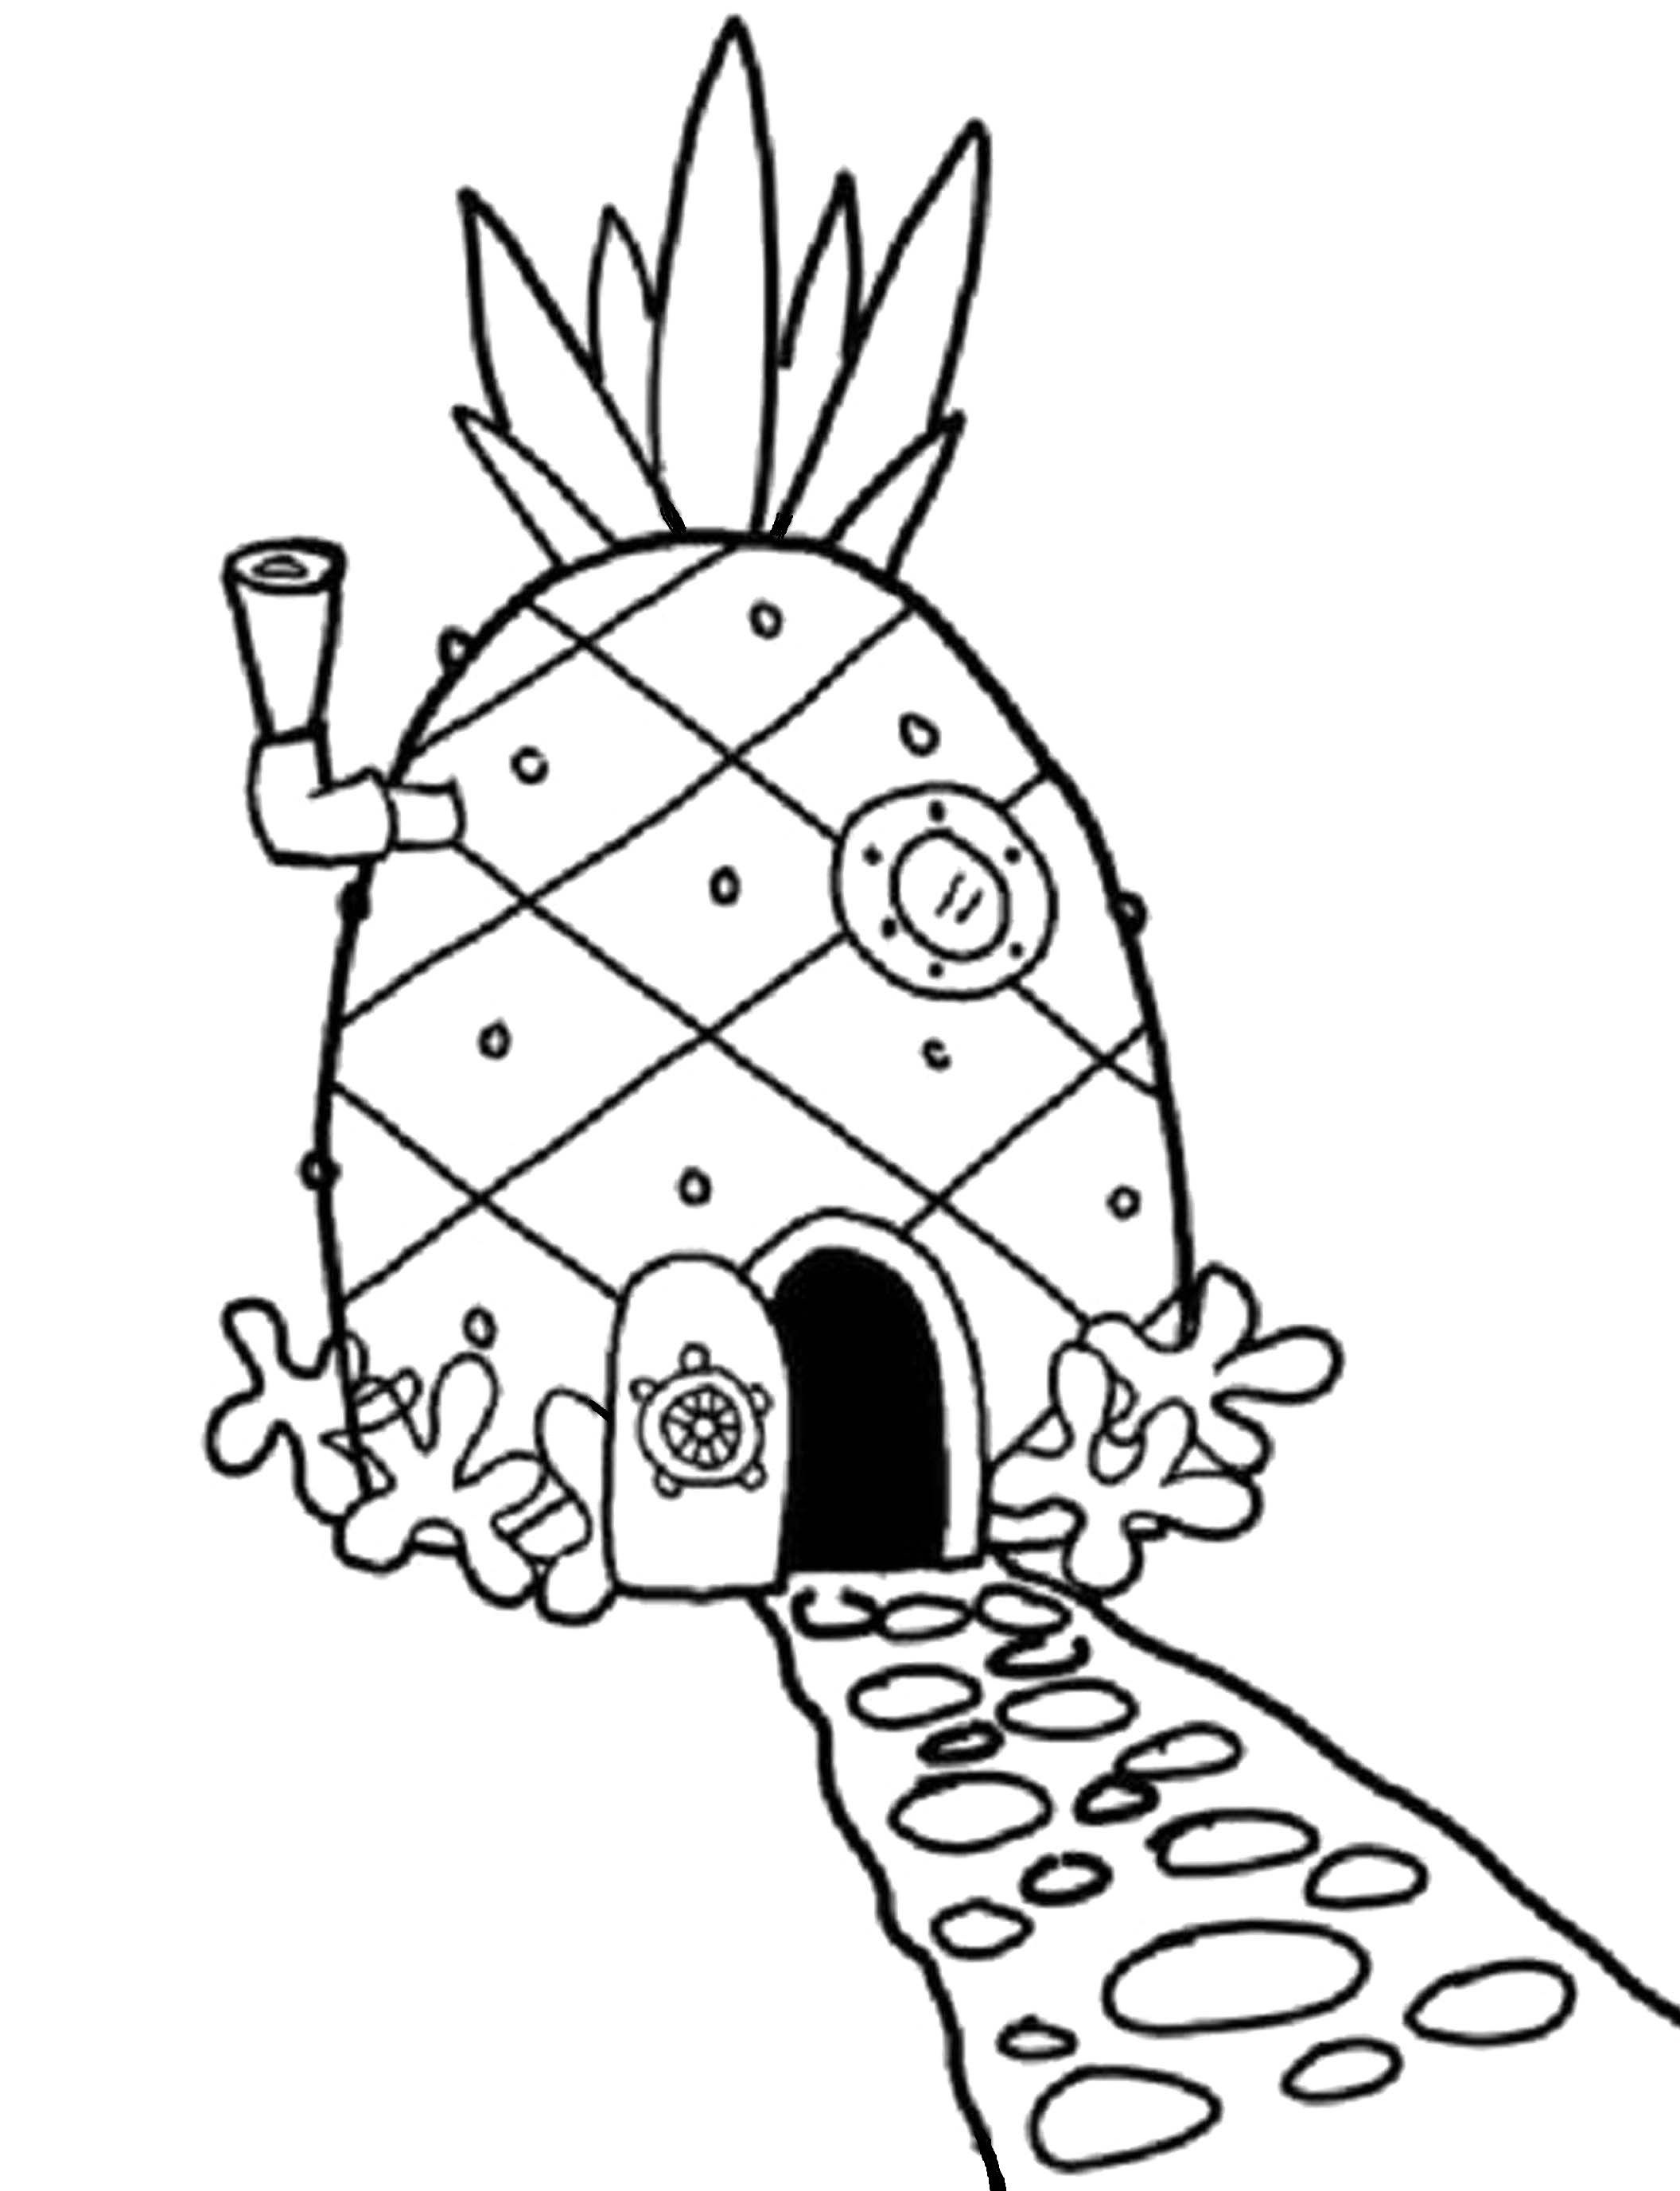 spongebob's pineapple house coloring pages spongebob house coloring pages with images spongebob house pineapple pages coloring spongebob's